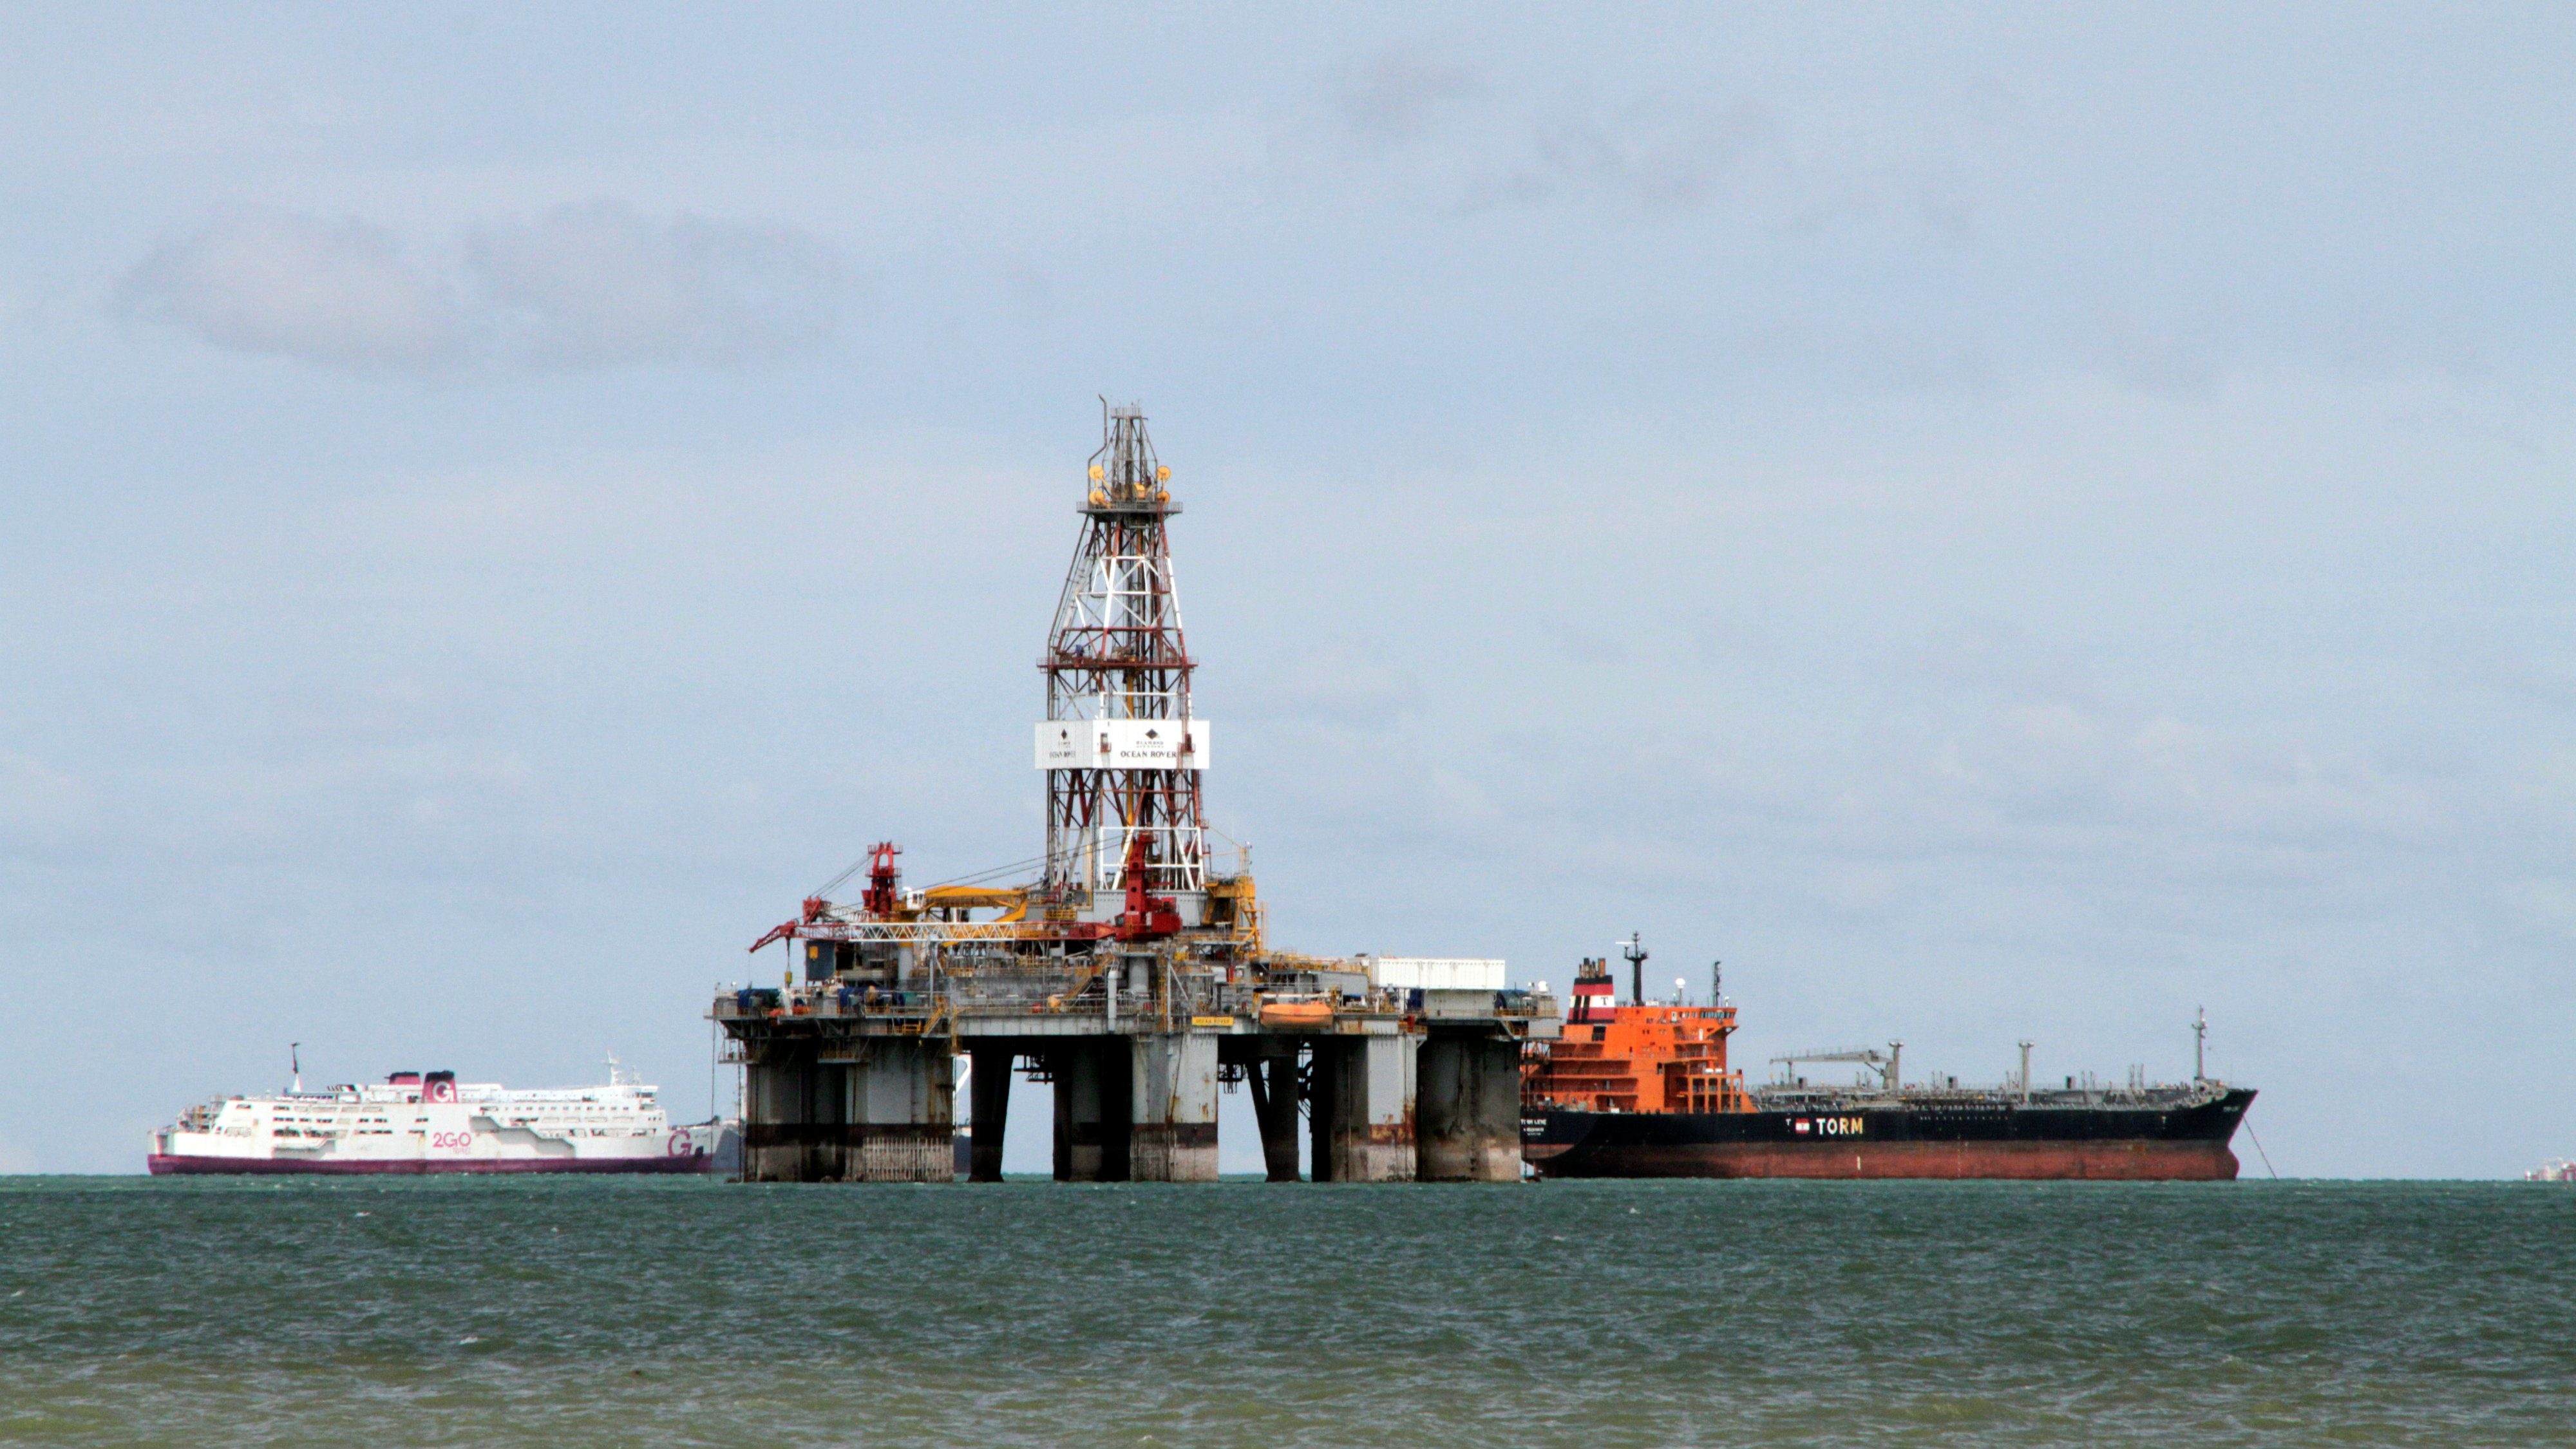 An idle oil rig off the coast of Pangerang